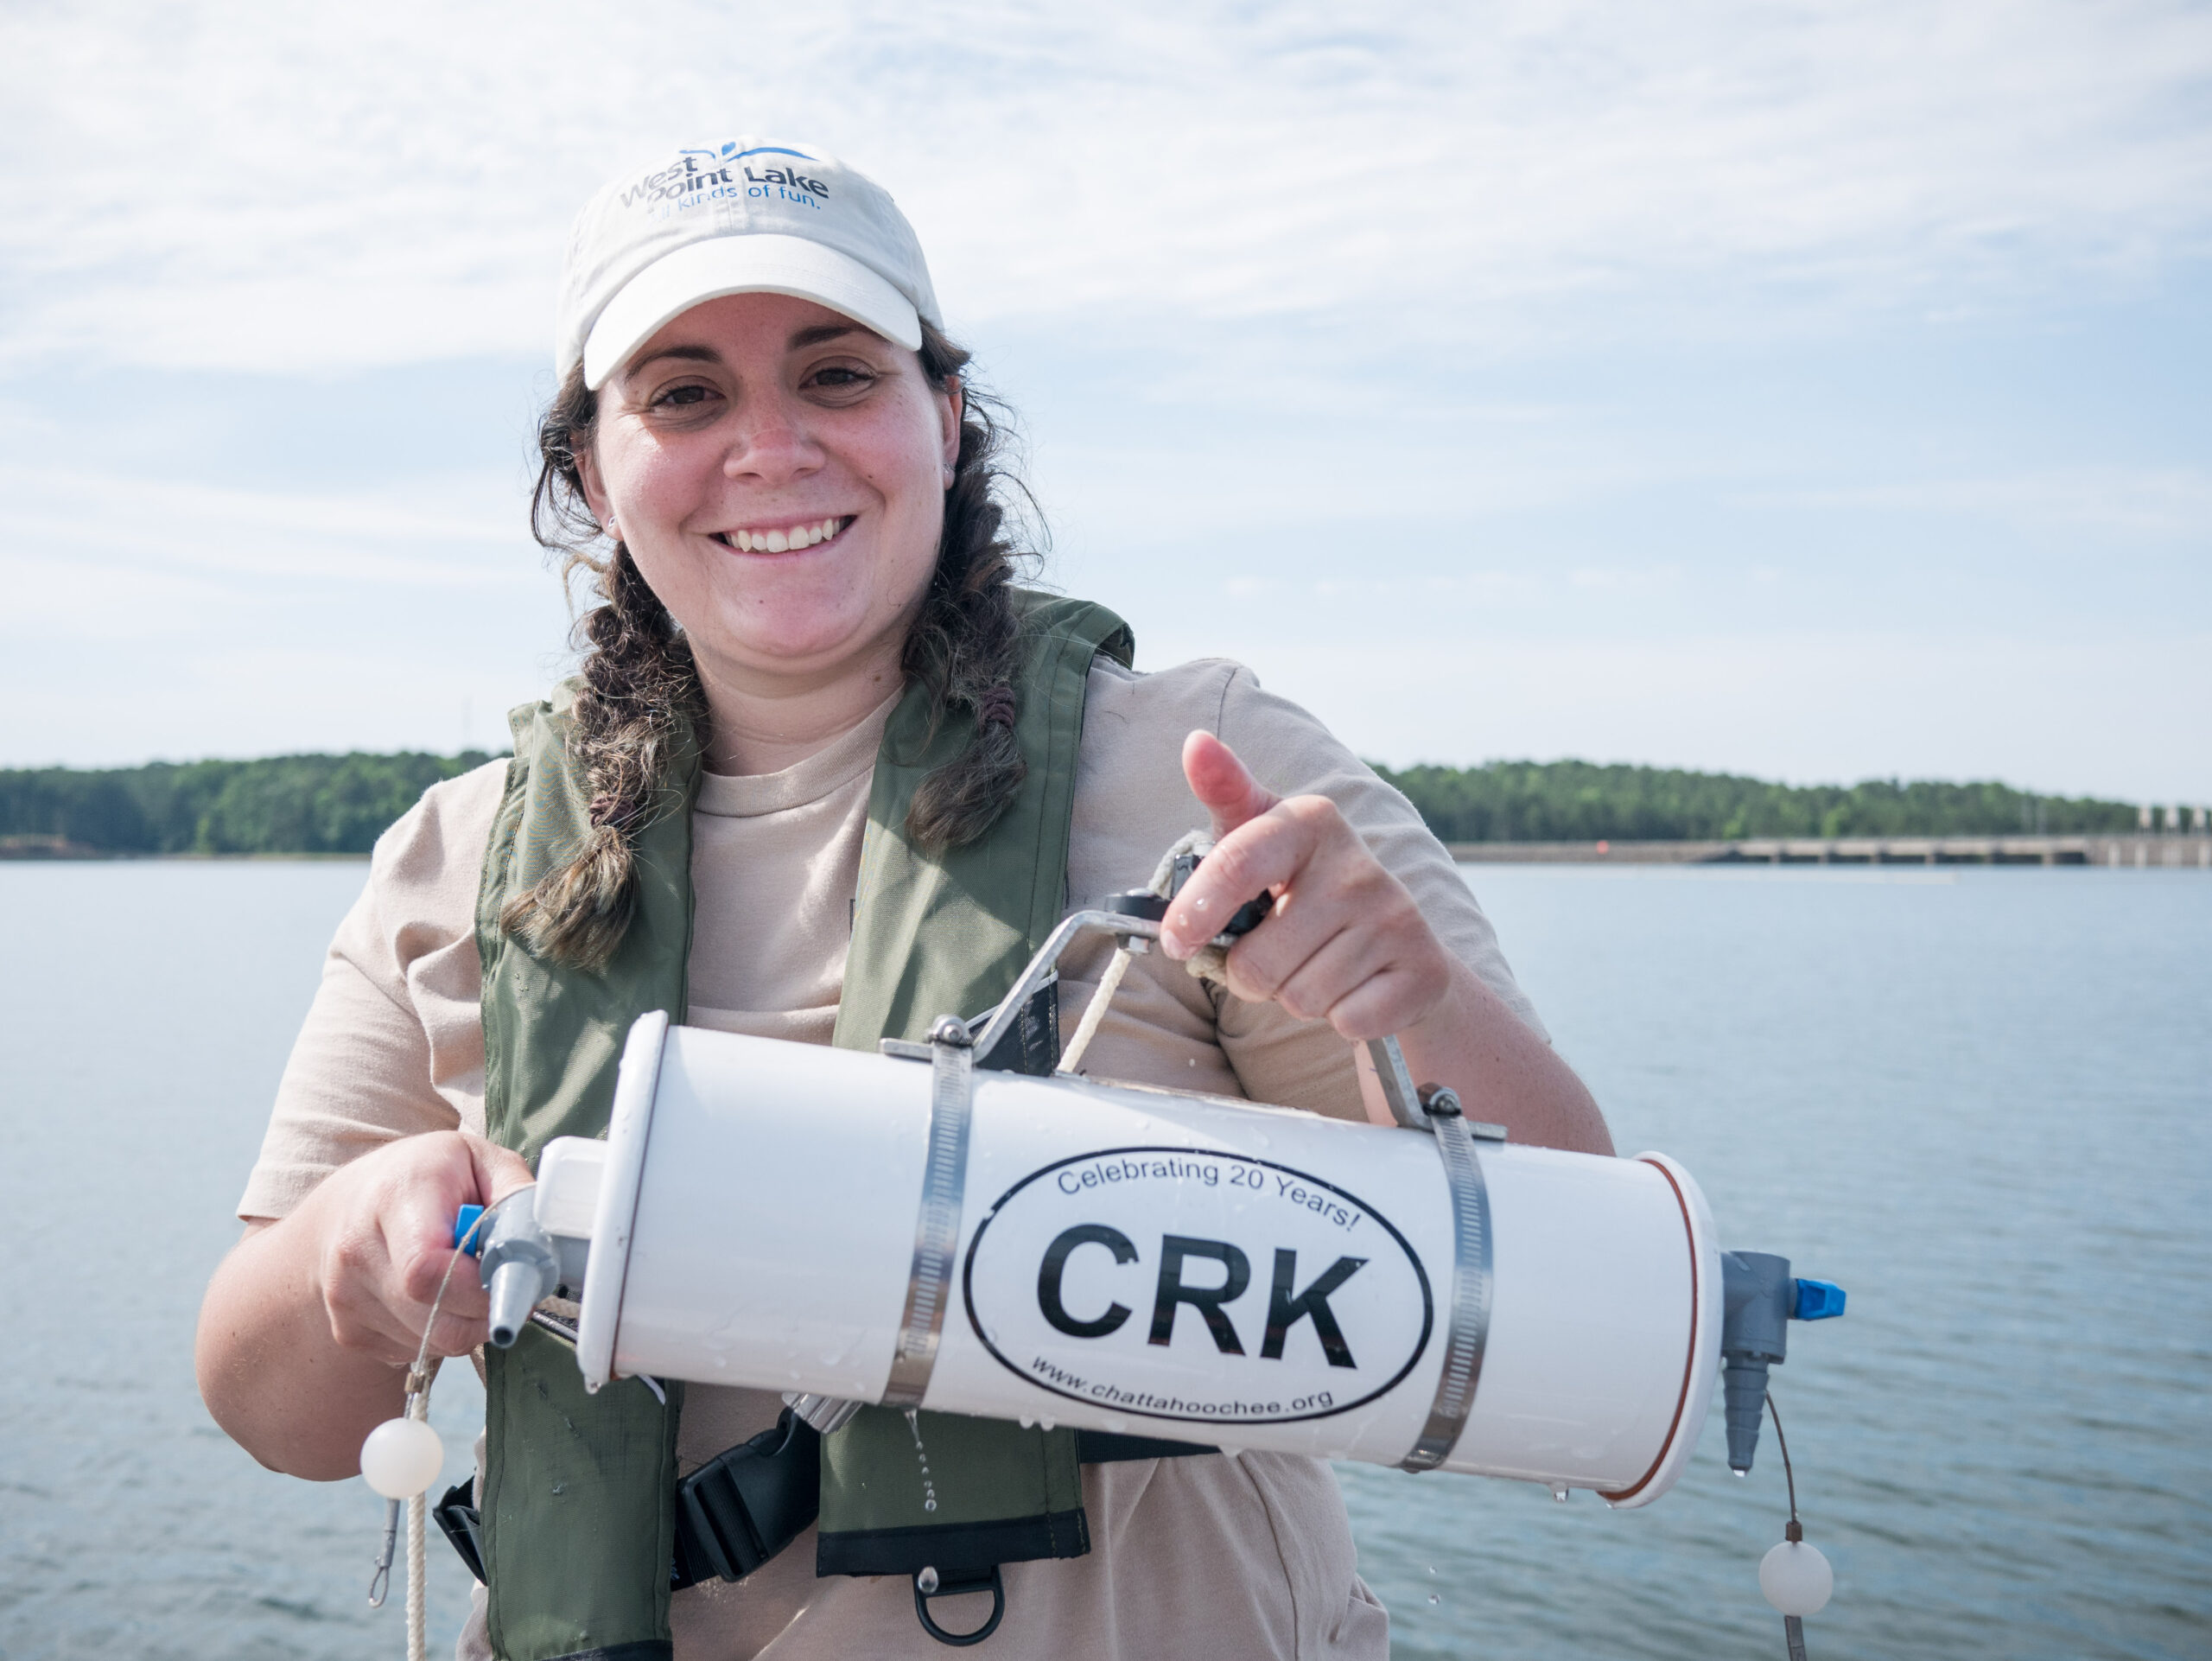 Woman on boat holds water sampling device with CRK sticker